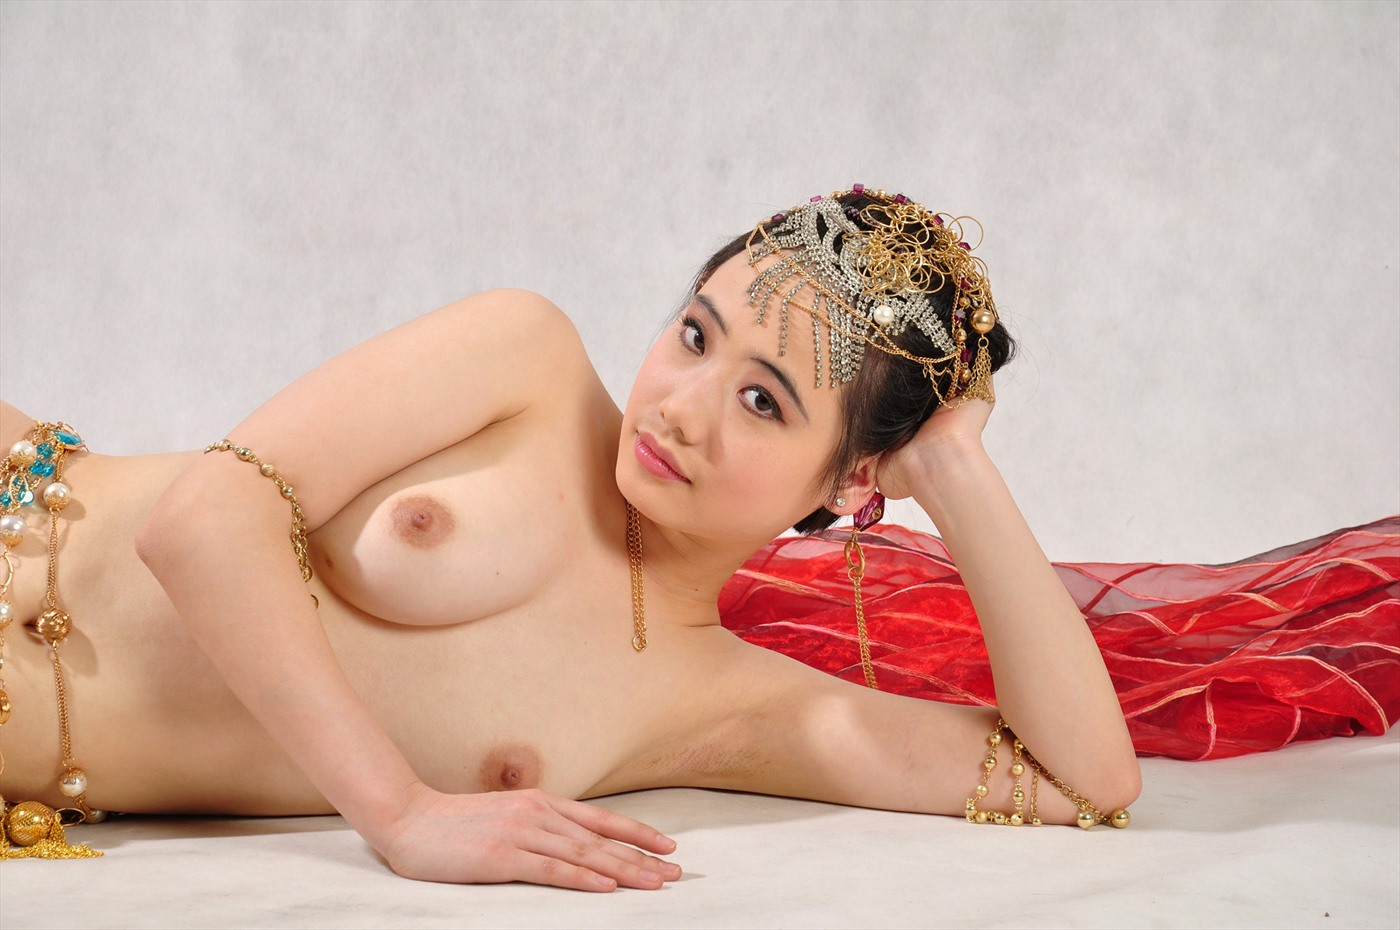 Chinese Girl Nudes Photos